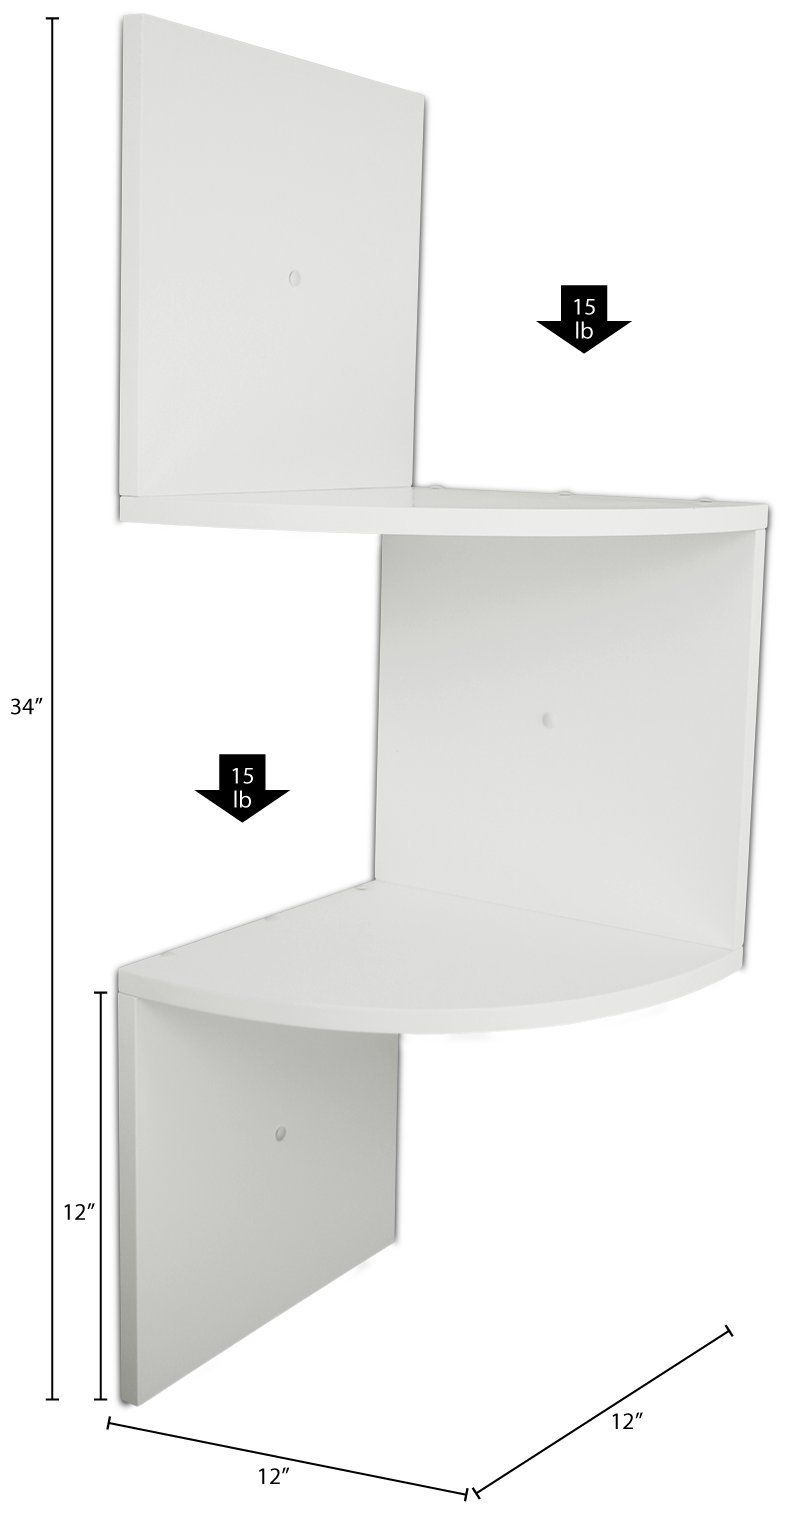 Universal Ws1236 36 X 12 Stainless Steel Wall Mount Shelf Steel Wall Wall Mounted Shelves Steel Shelf